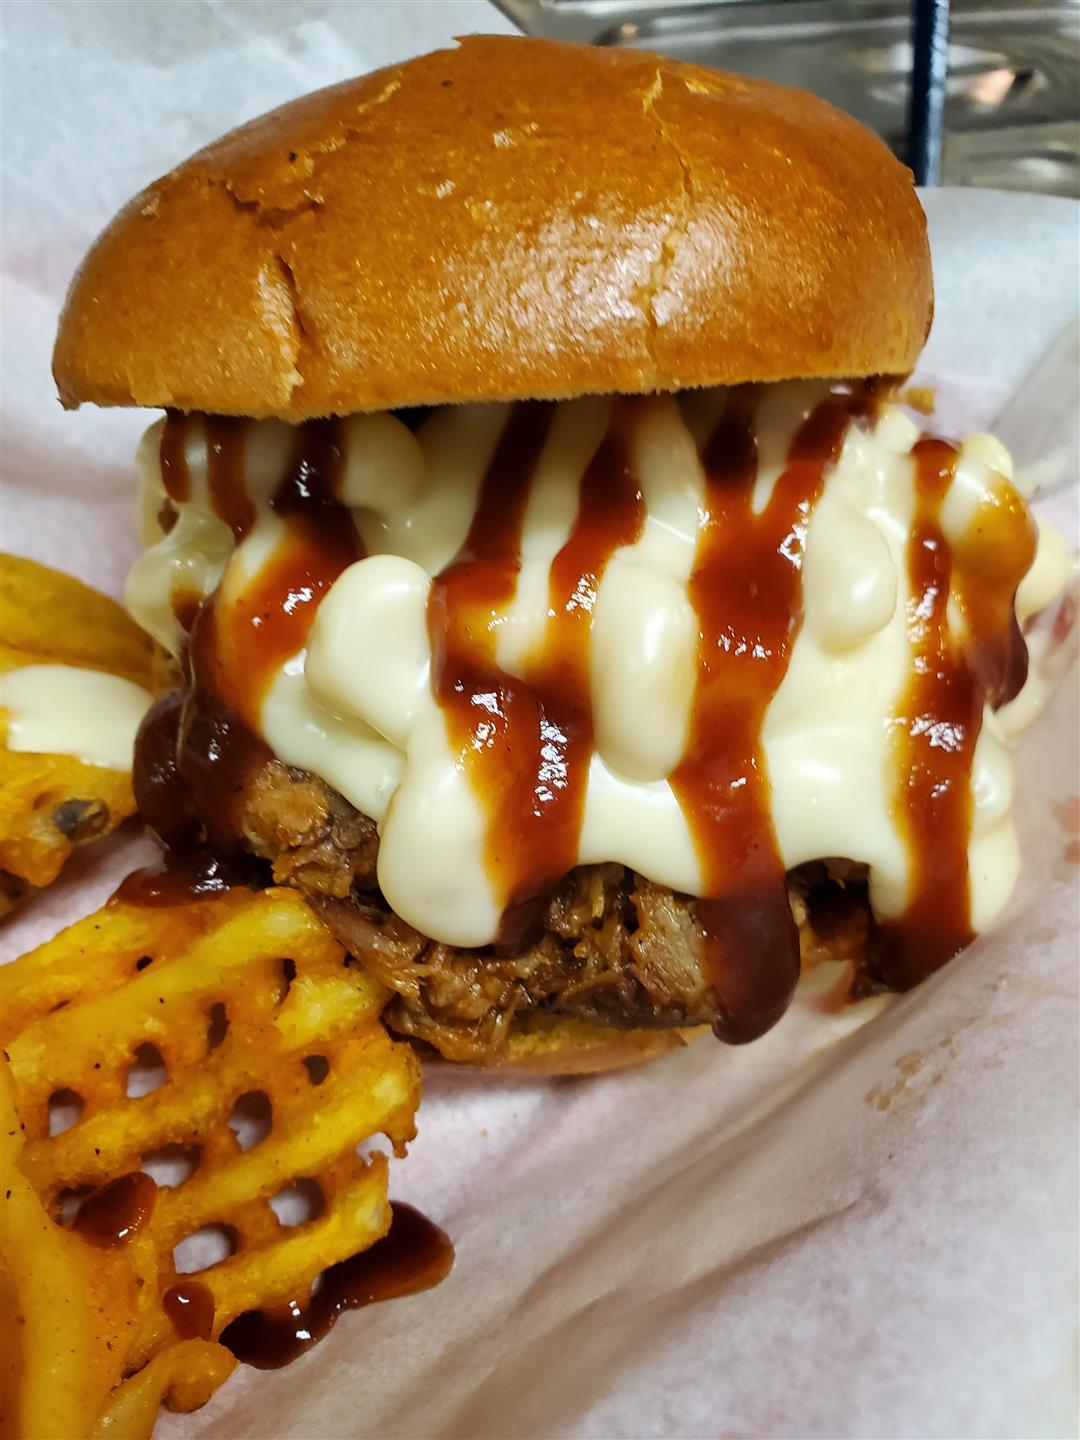 pulled pork burger with barbeque sauce and melted cheese